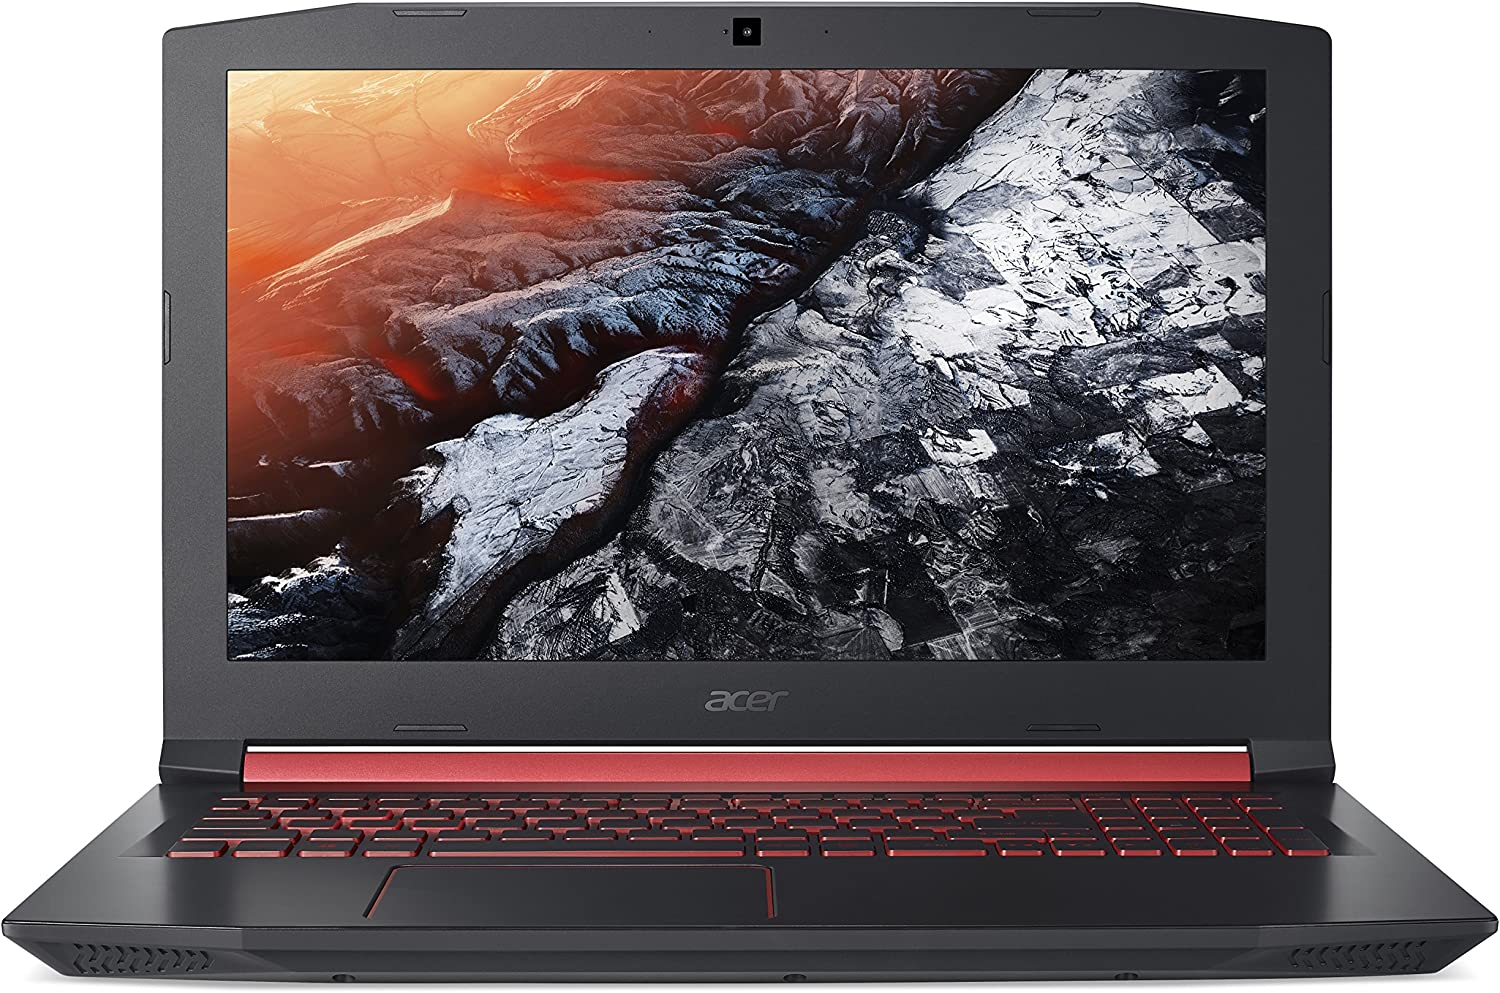 Amazon Com Acer Nitro 5 Gaming Laptop Intel Core I7 7700hq Geforce Gtx 1050 Ti 15 6 Full Hd 16gb Ddr4 1tb Hdd An515 51 75a2 Computers Accessories